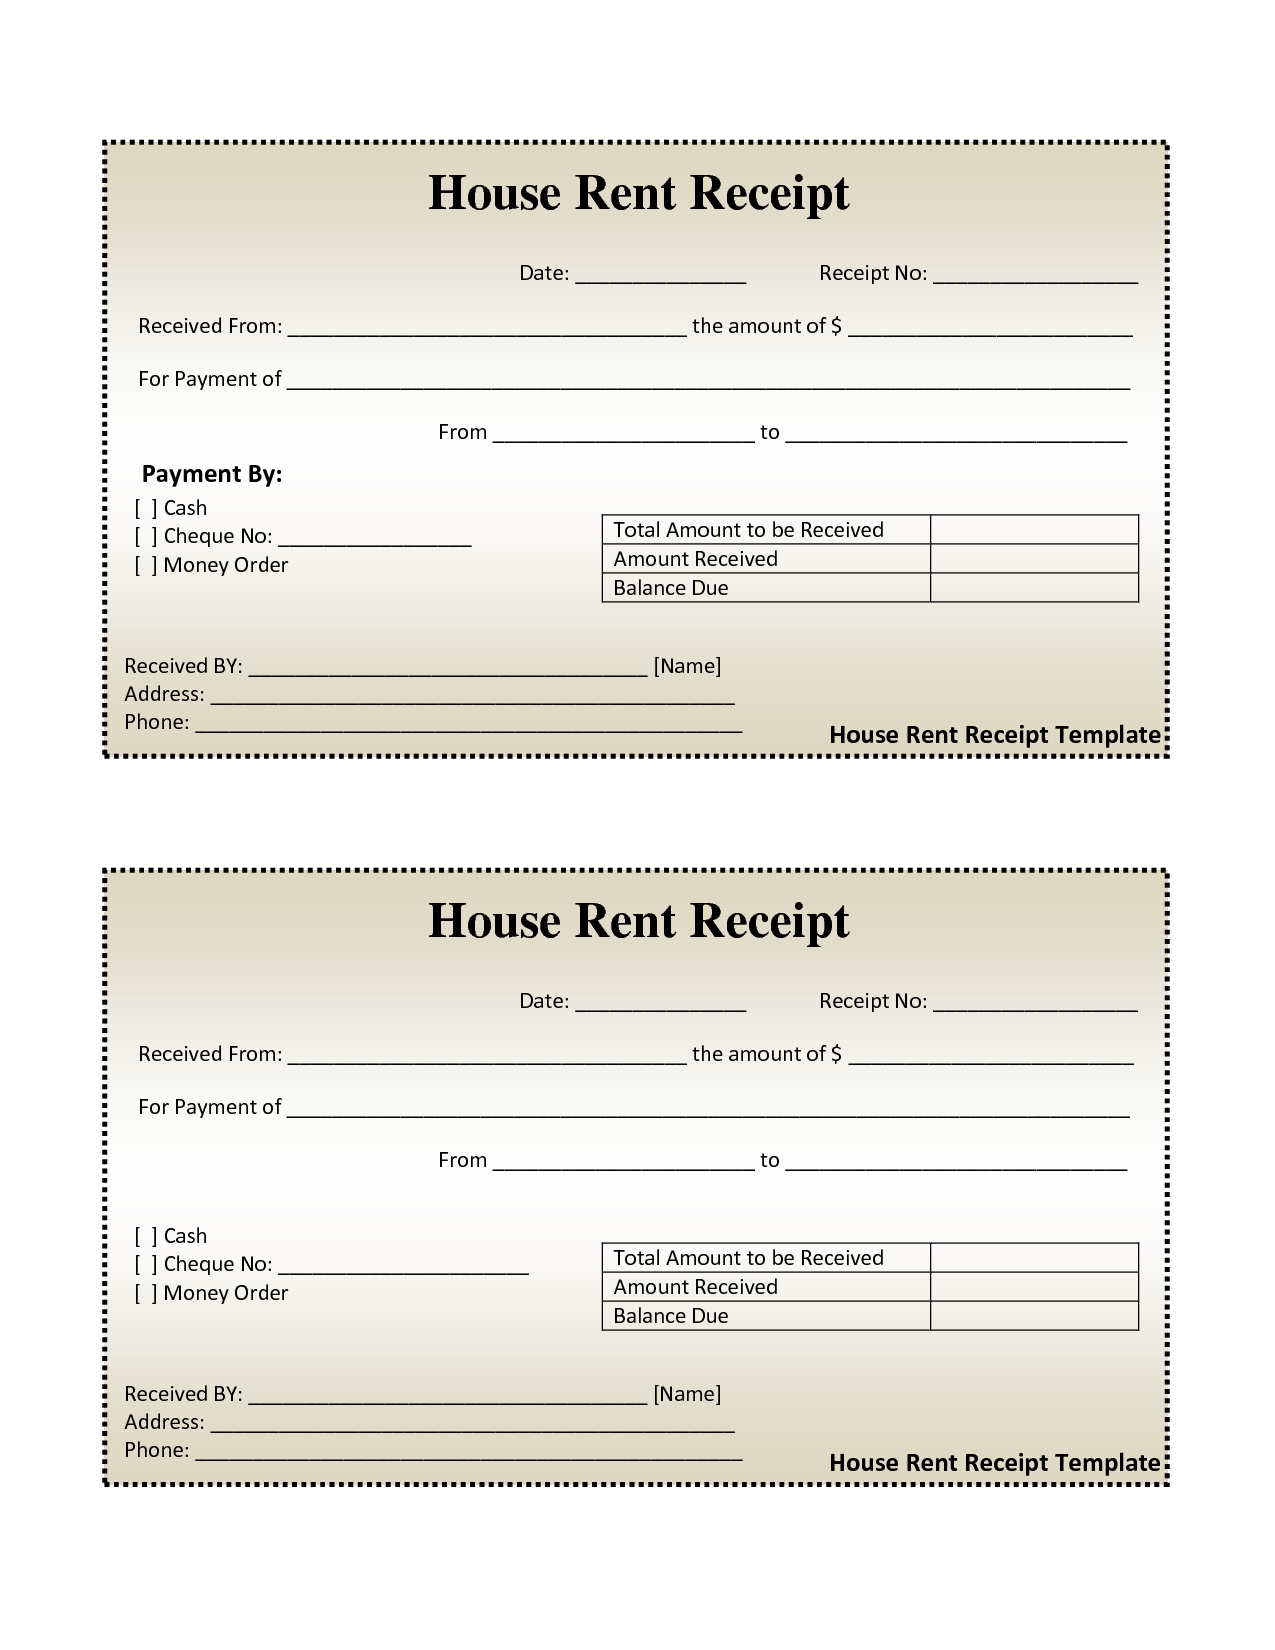 Electricity Bill Template and Free House Rental Invoice House Rent Receipt Template Doc